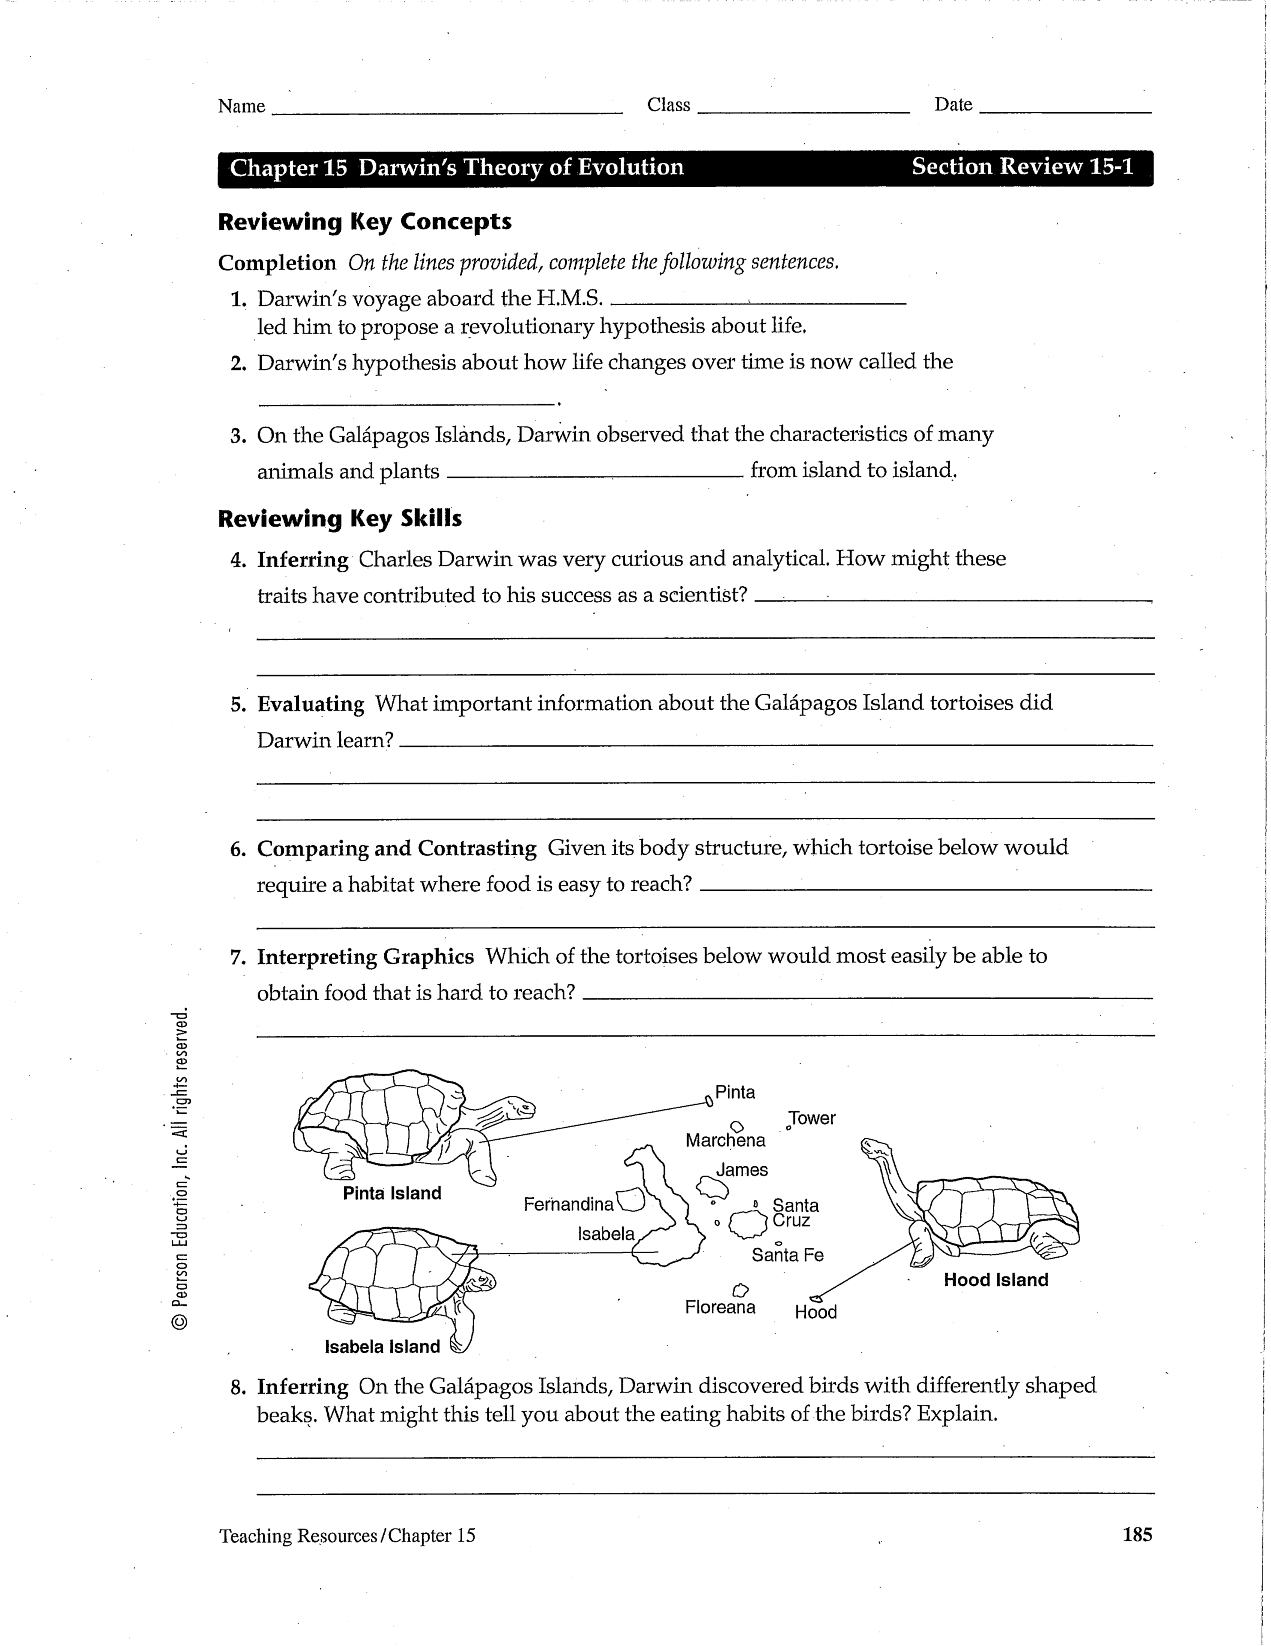 15 Best Images Of Natural Selection Worksheet Answers